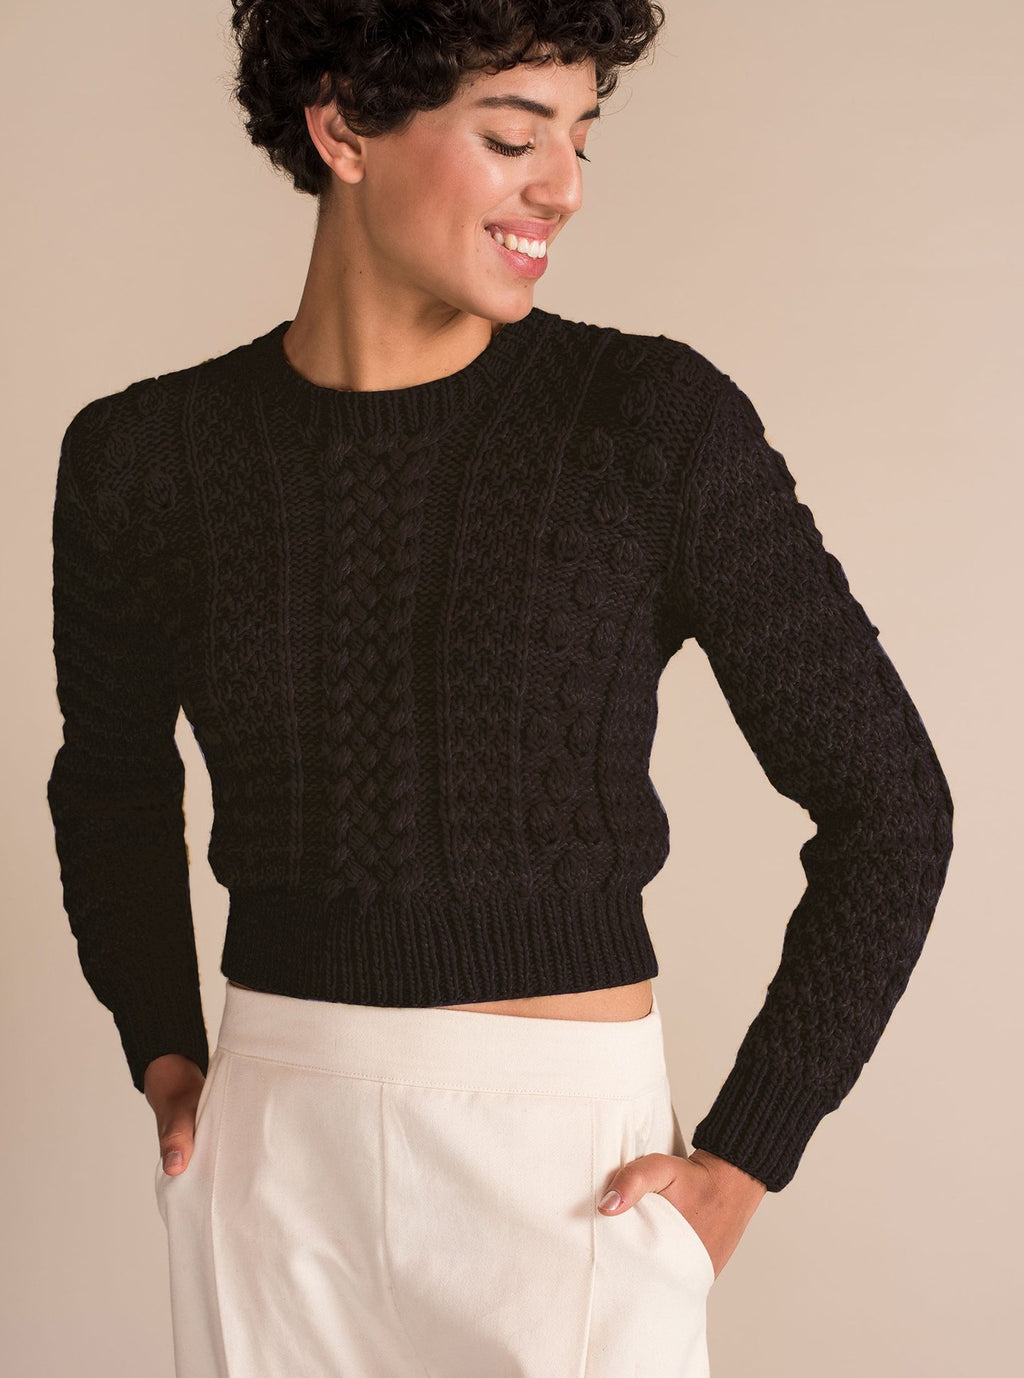 CANASTA Crop Sweater in Black